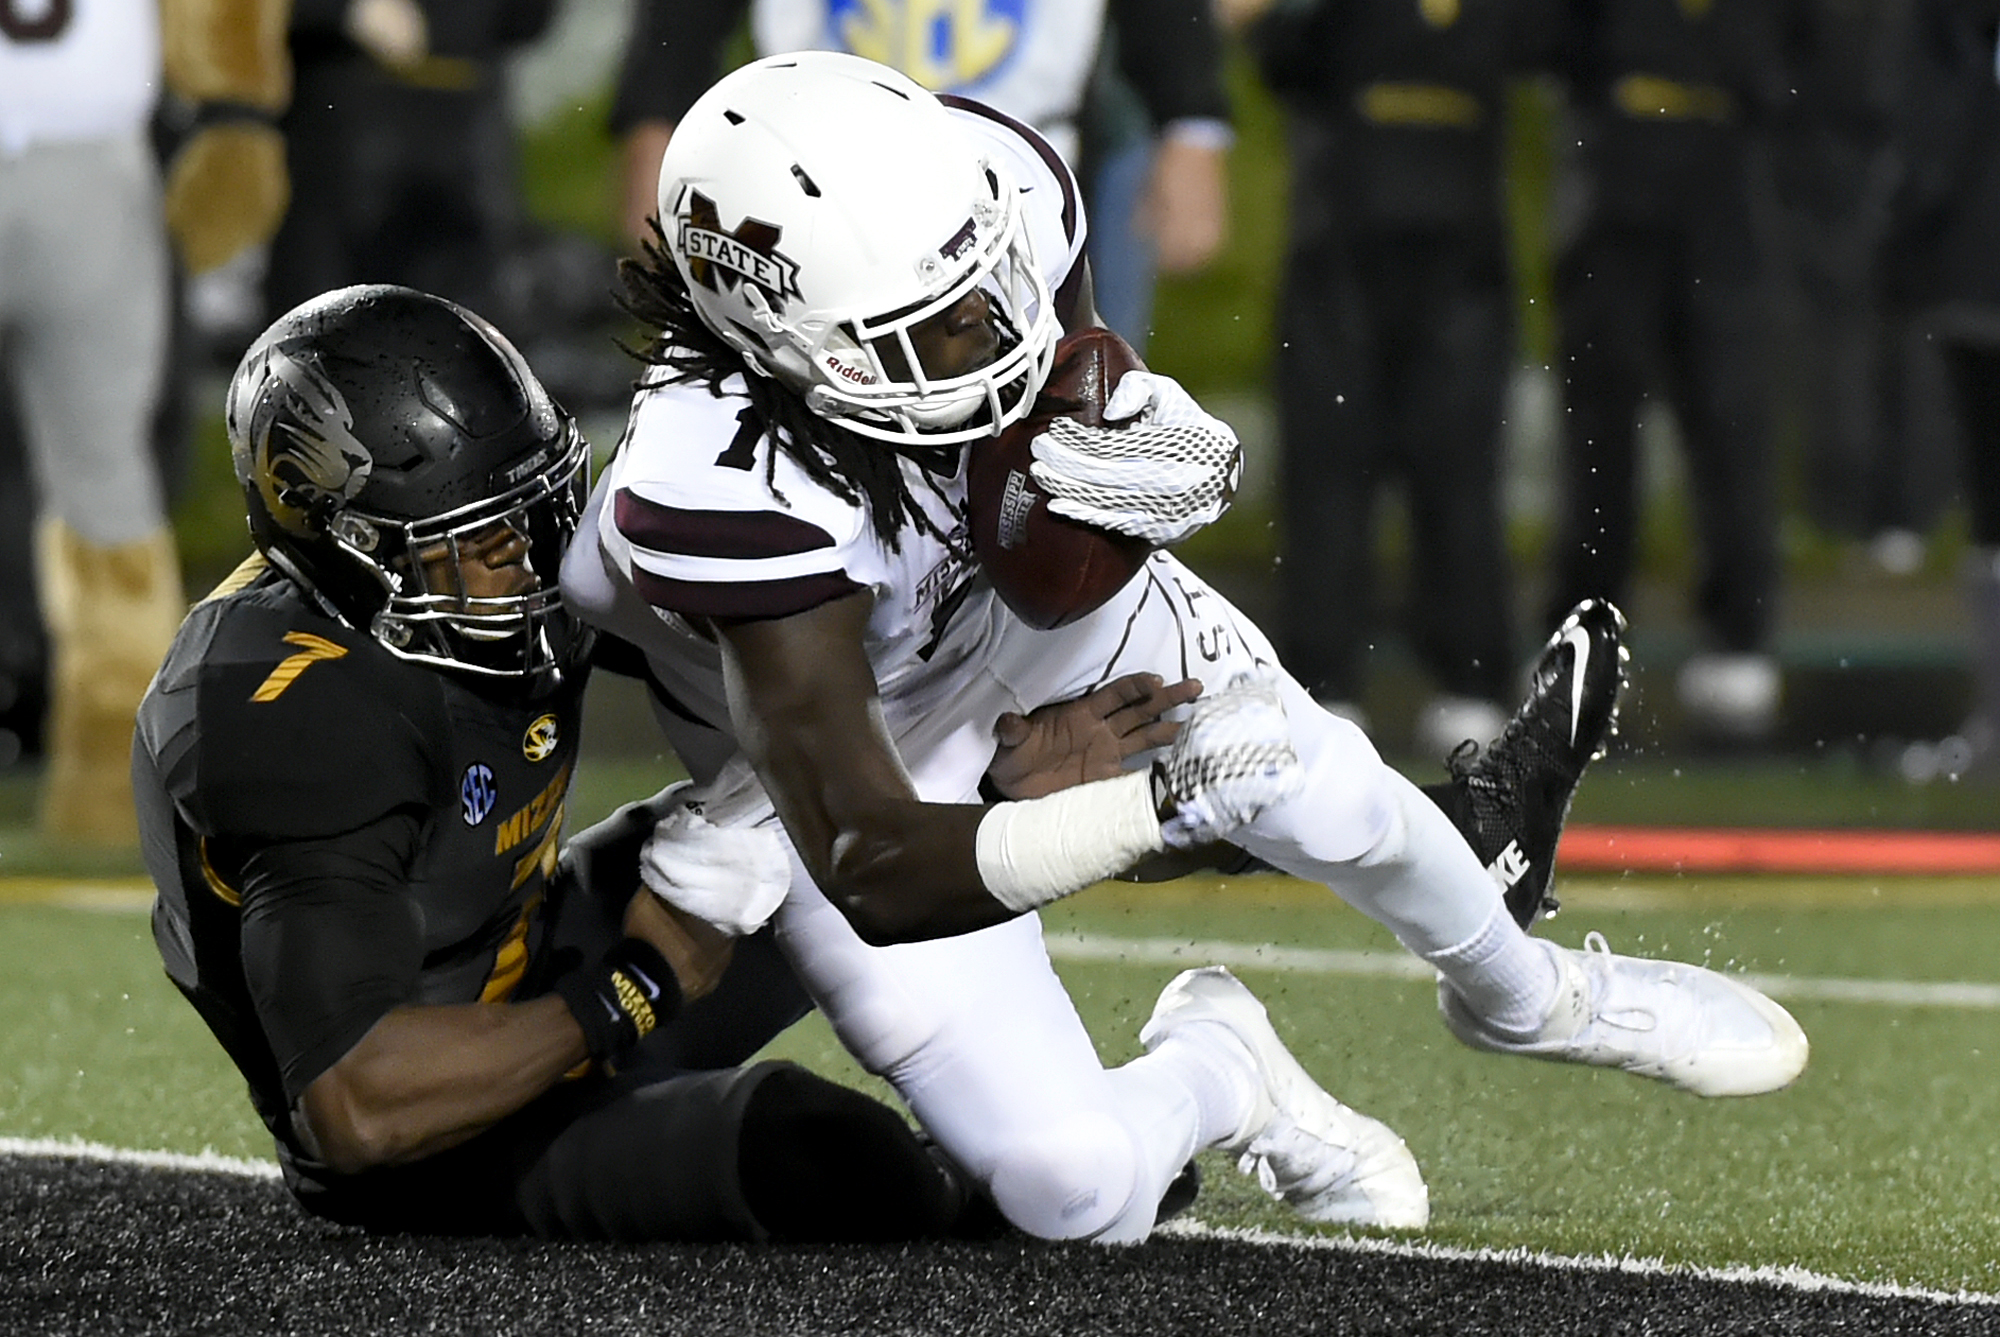 Mississippi State wide receiver De'Runnya Wilson, right, catches a five-yard touchdown pass as Missouri defensive back Kenya Dennis defends during the second half of an NCAA college football game on Thursday, Nov. 5, 2015, in Columbia, Mo. (AP Photo/L.G Patterson)